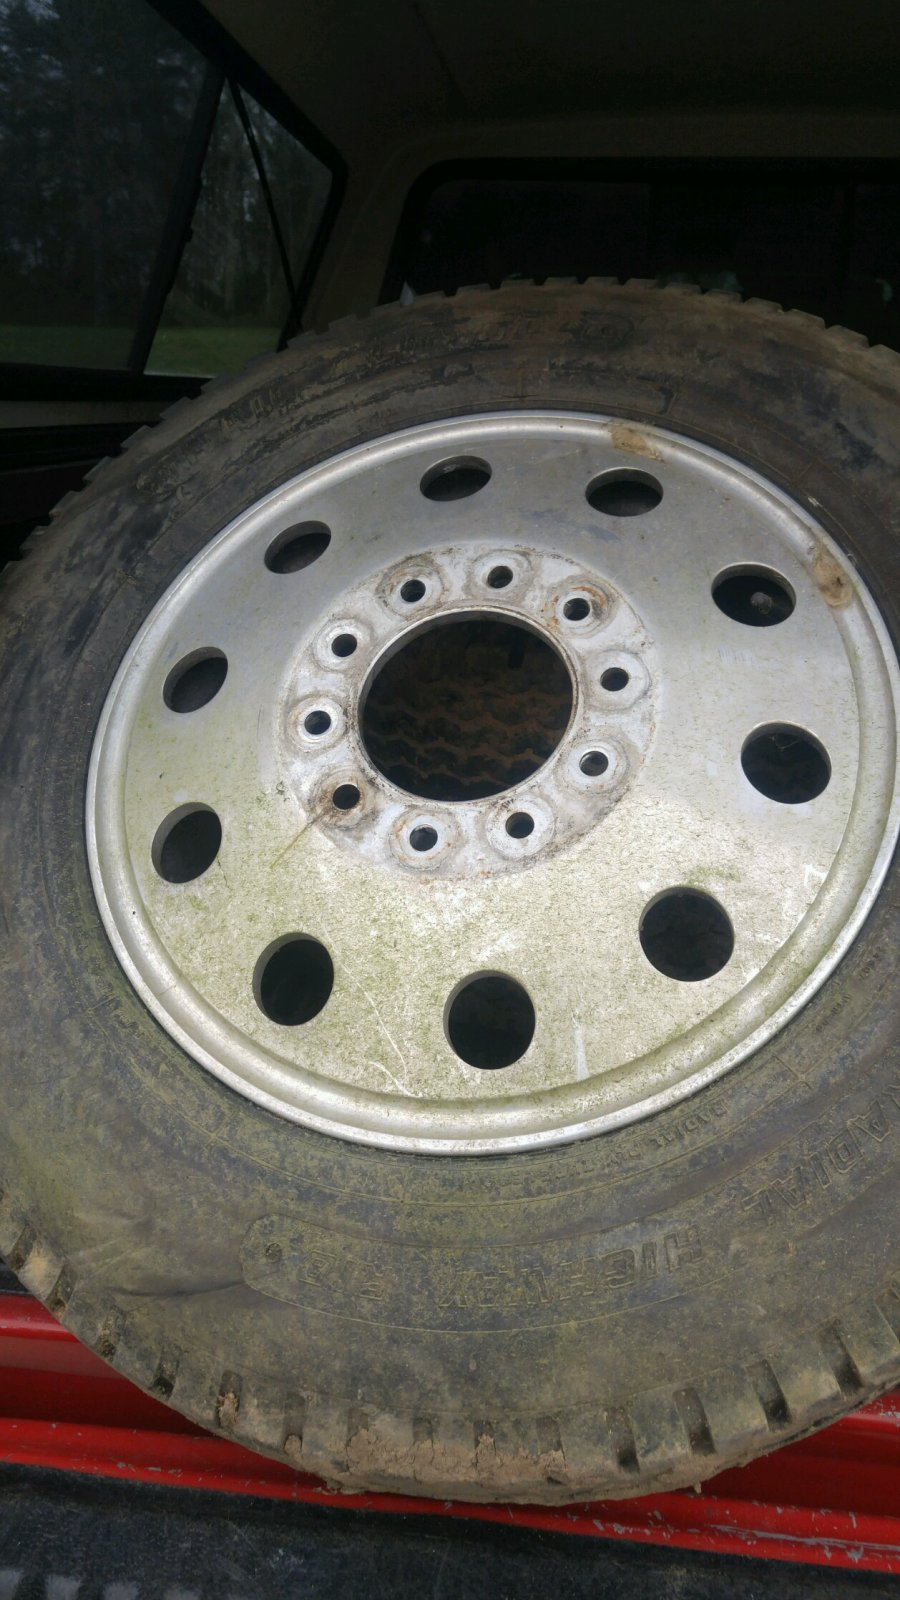 Click image for larger version  Name:Aluminum wheel.jpg Views:25 Size:234.3 KB ID:337324